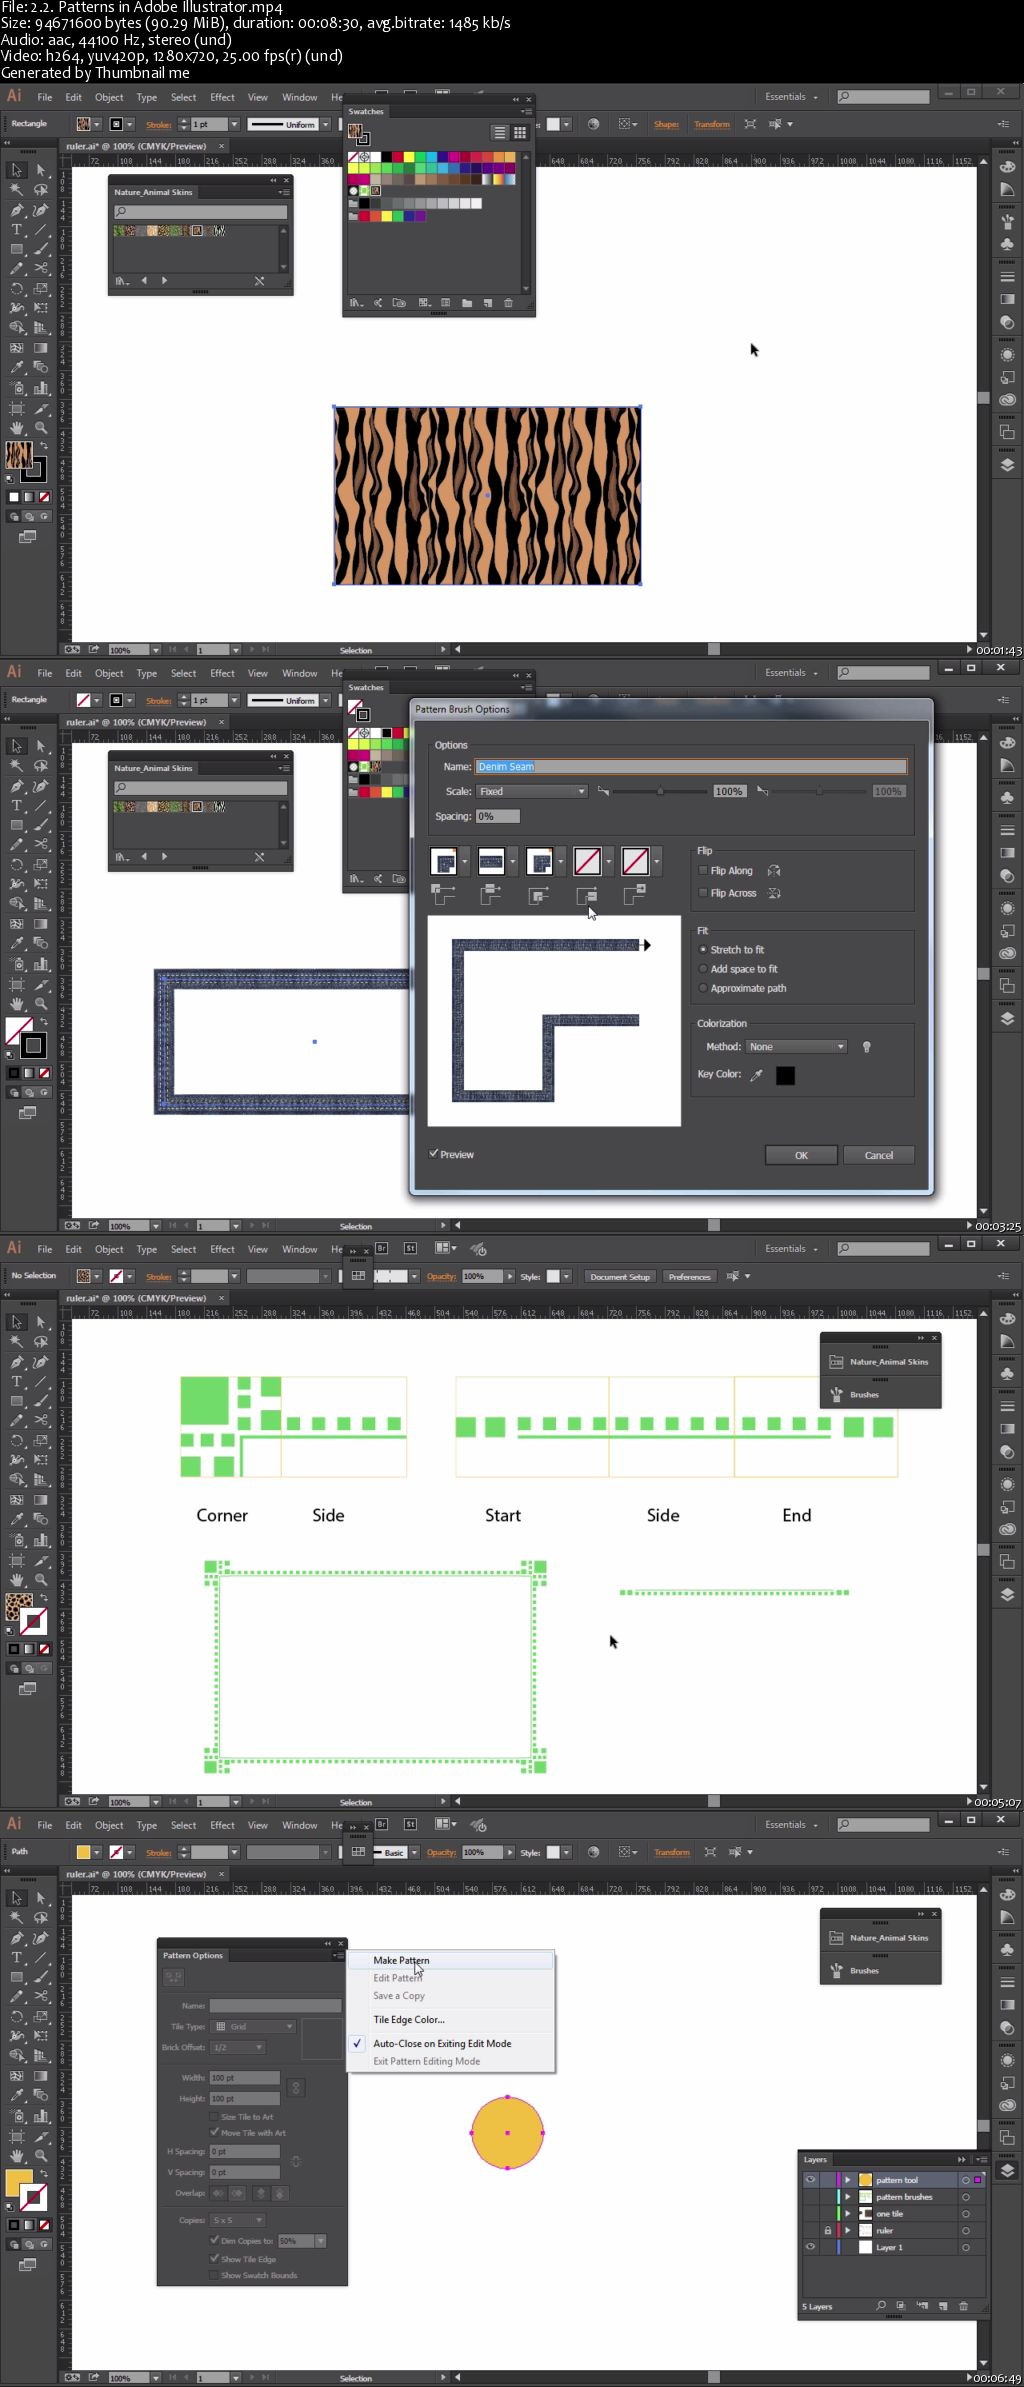 Tutsplus - Master Patterns in Adobe Illustrator